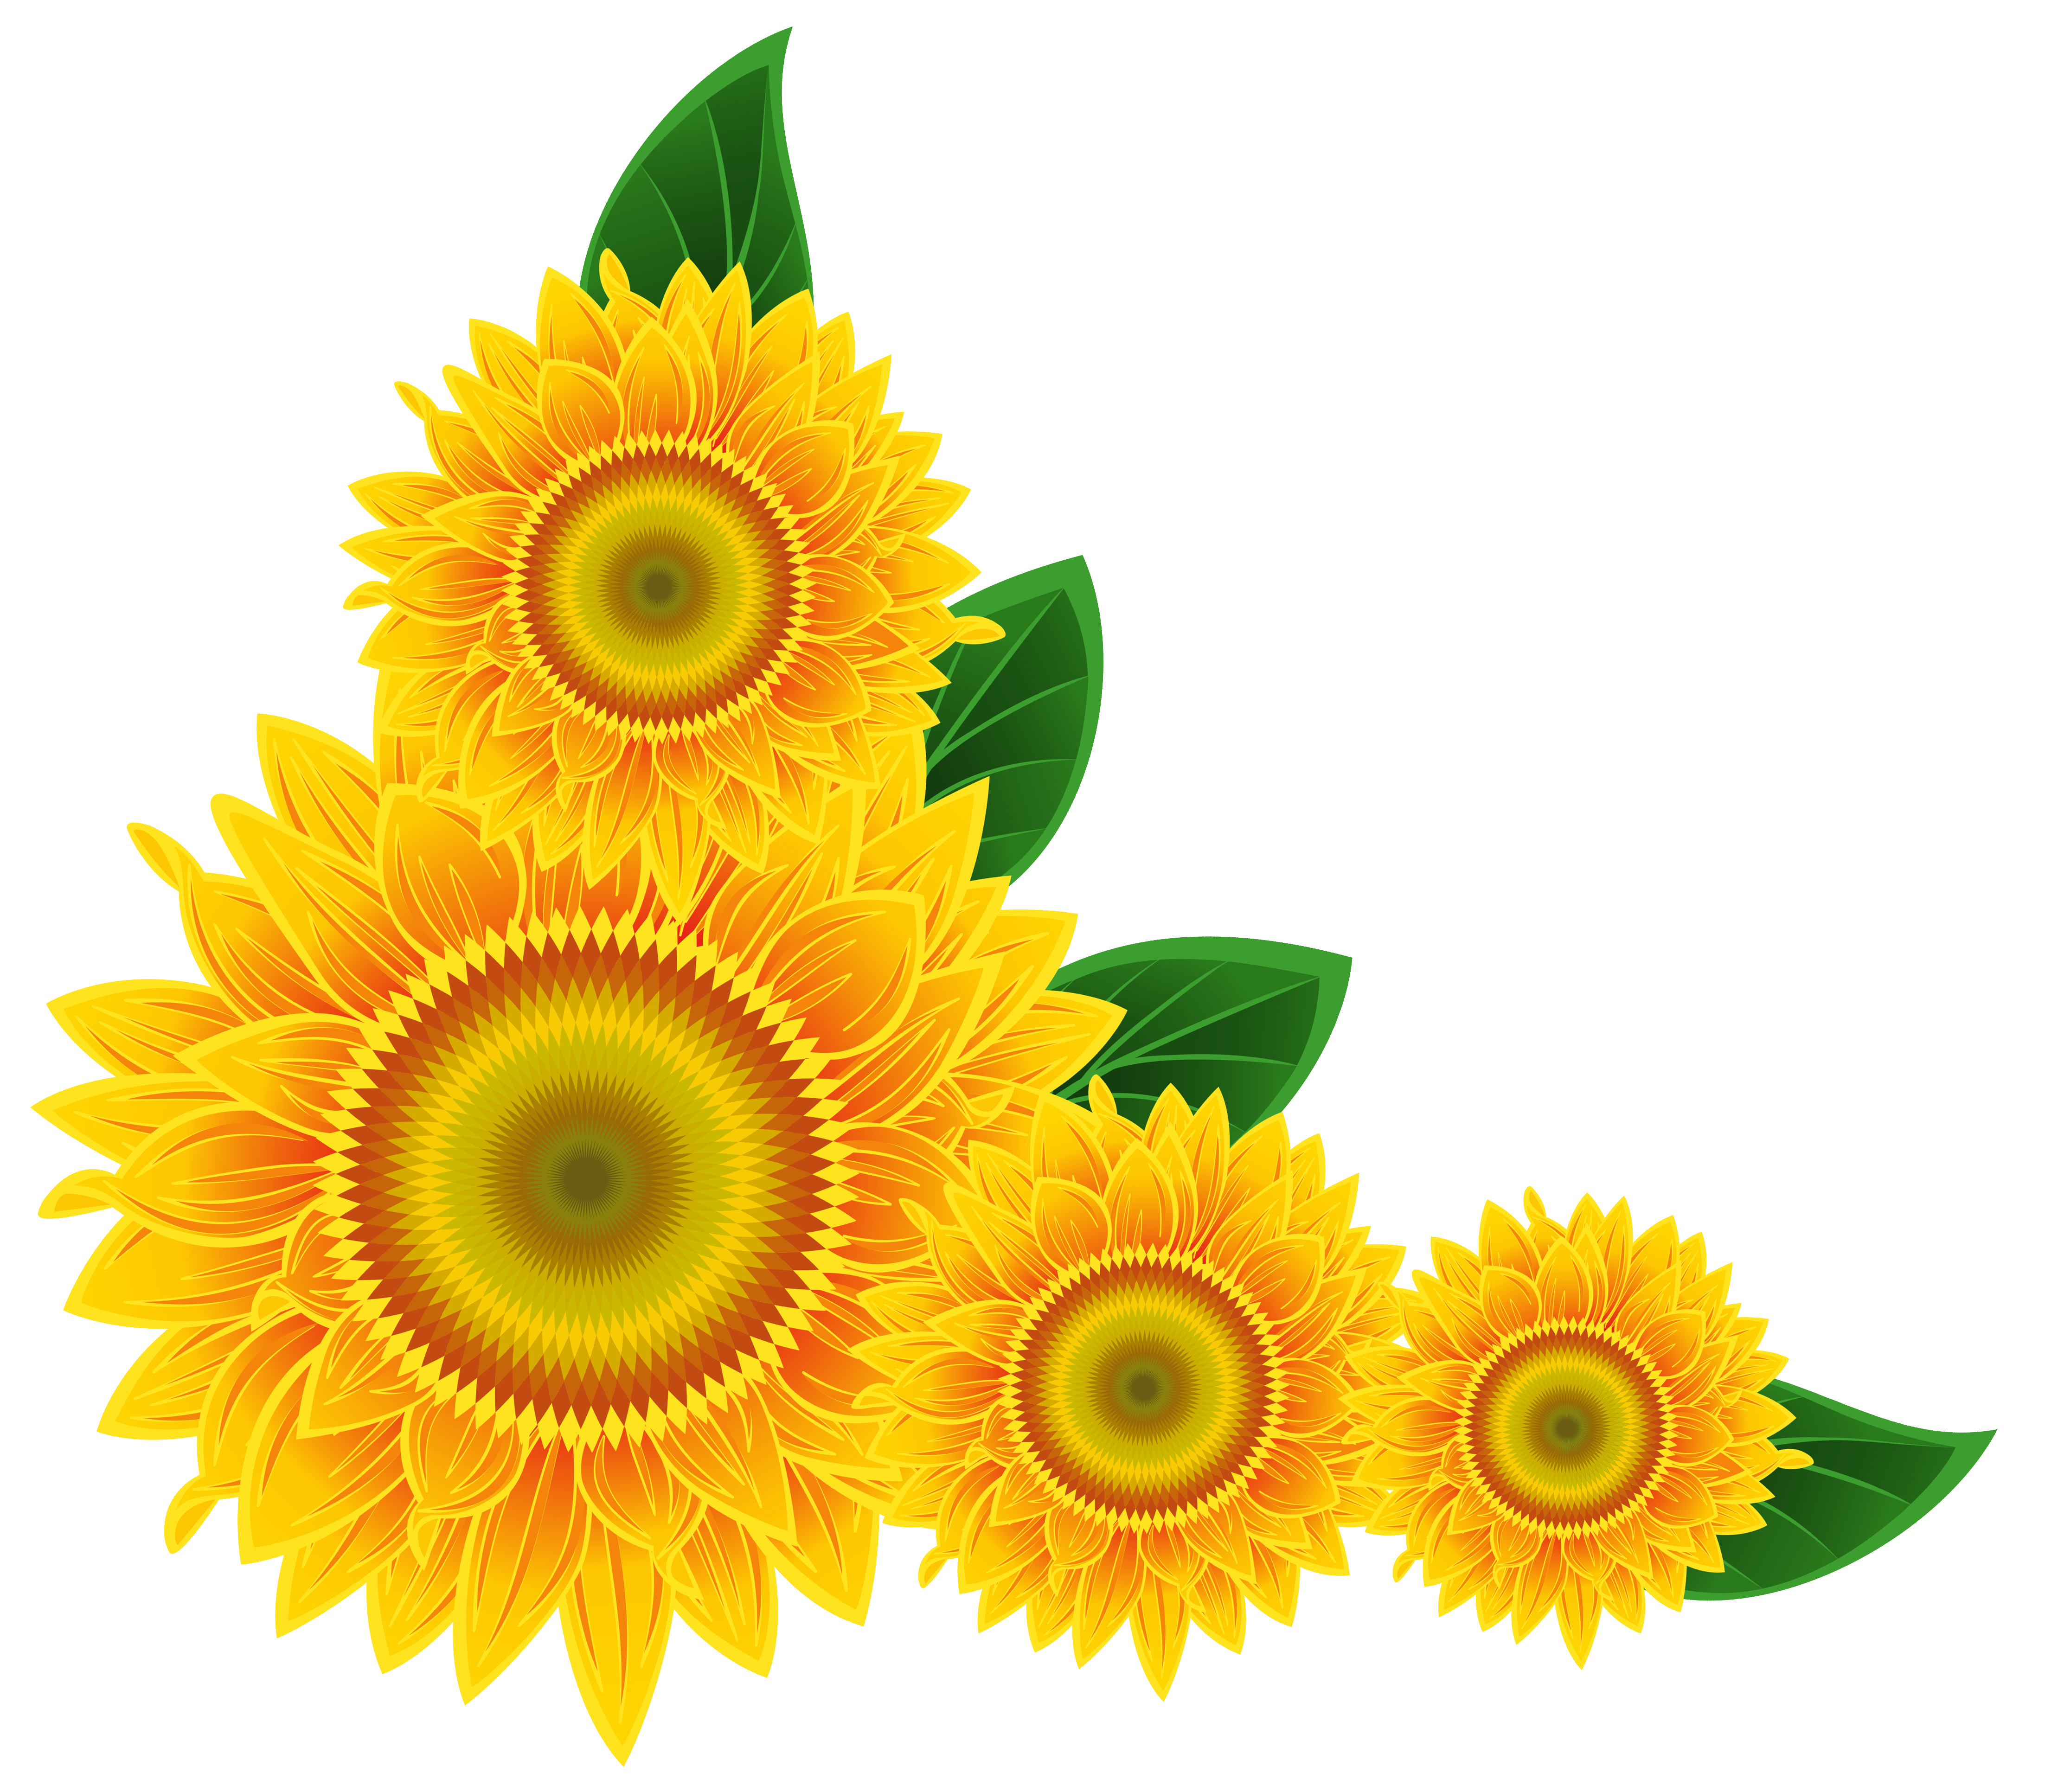 Sunflower decoration png image. Clipart halloween corner